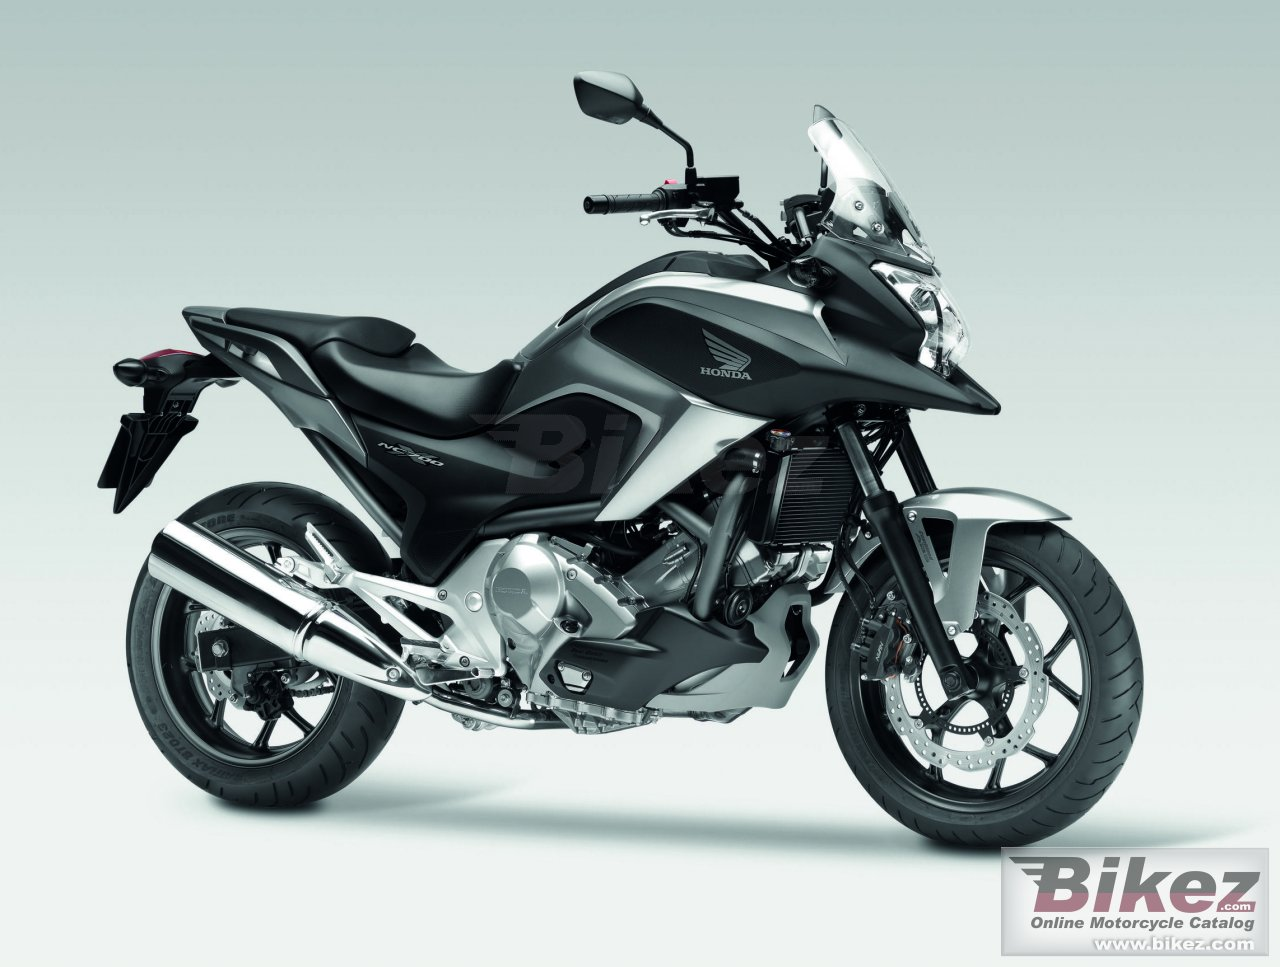 Big Honda nc700x picture and wallpaper from Bikez.com